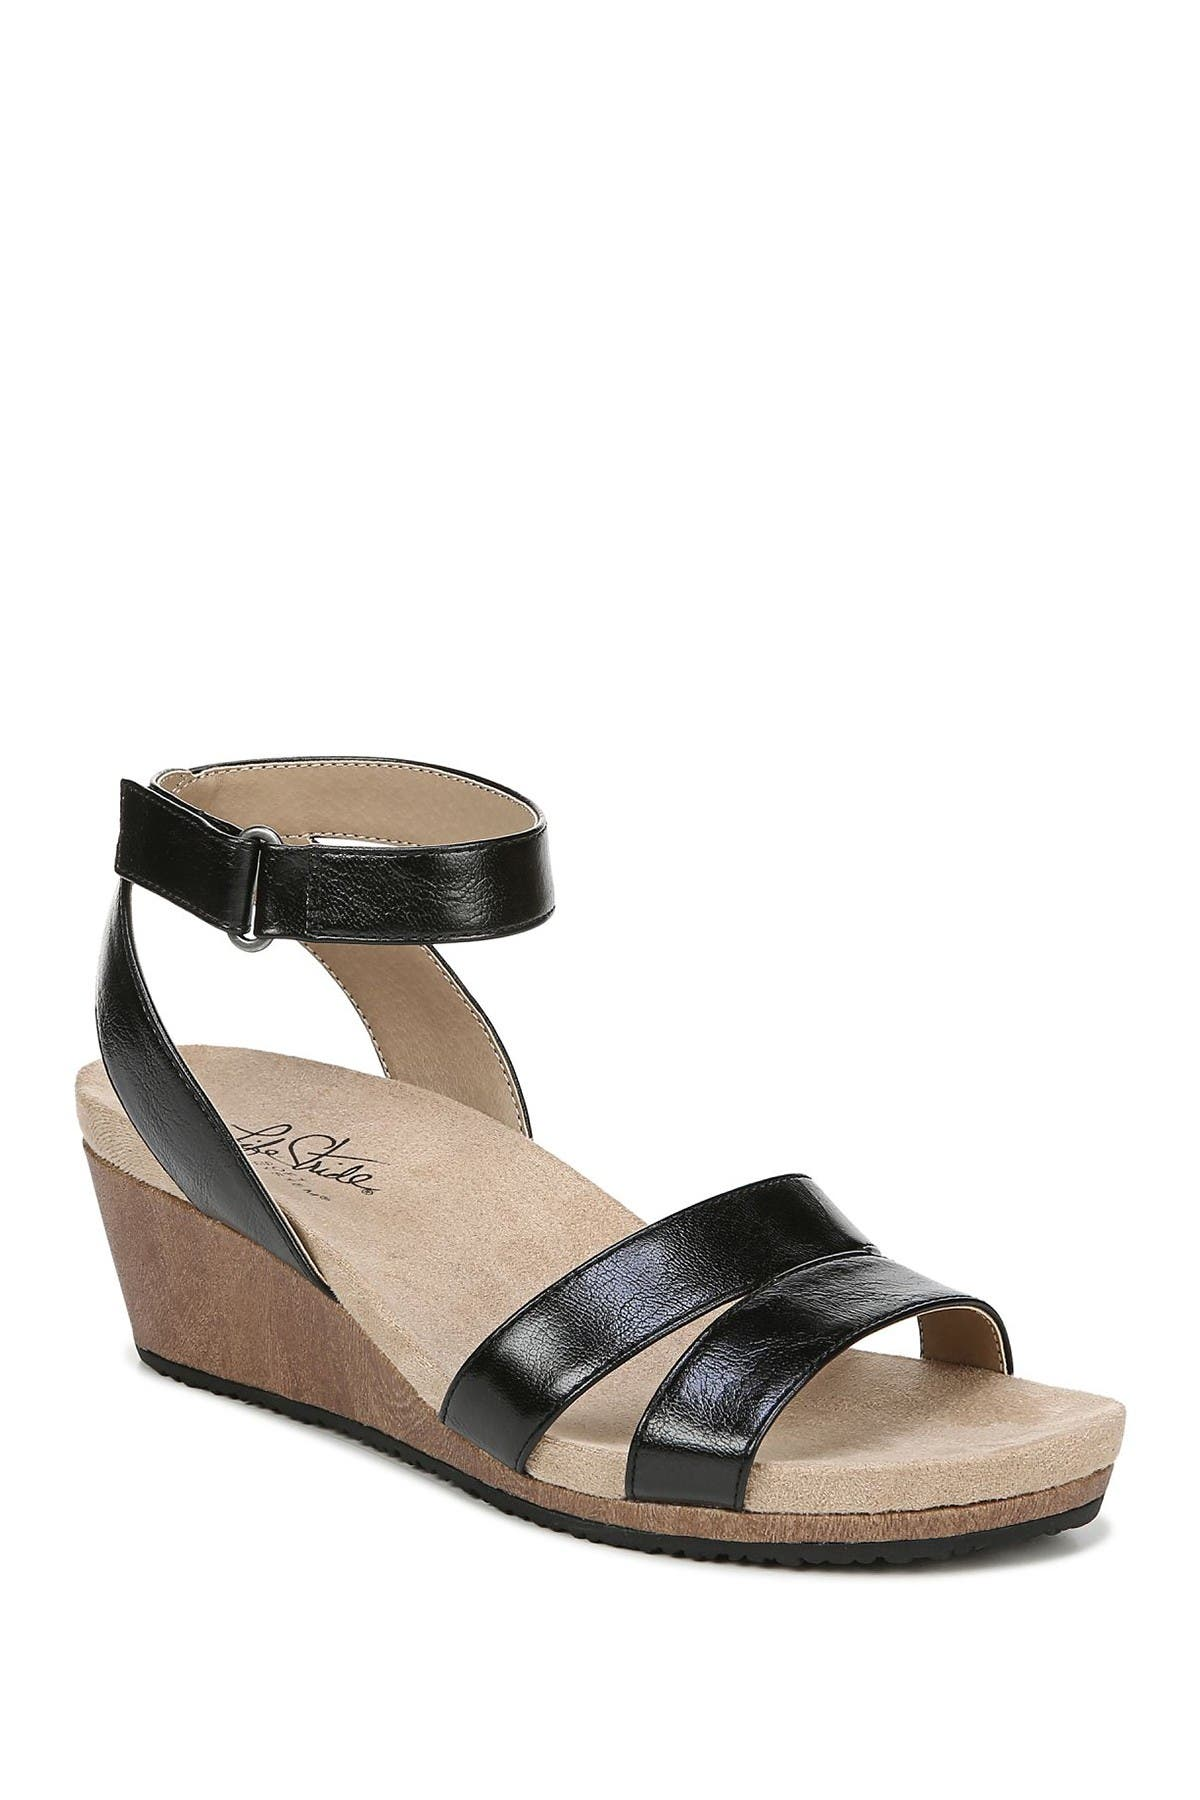 Image of LifeStride Max Wedge Sandal